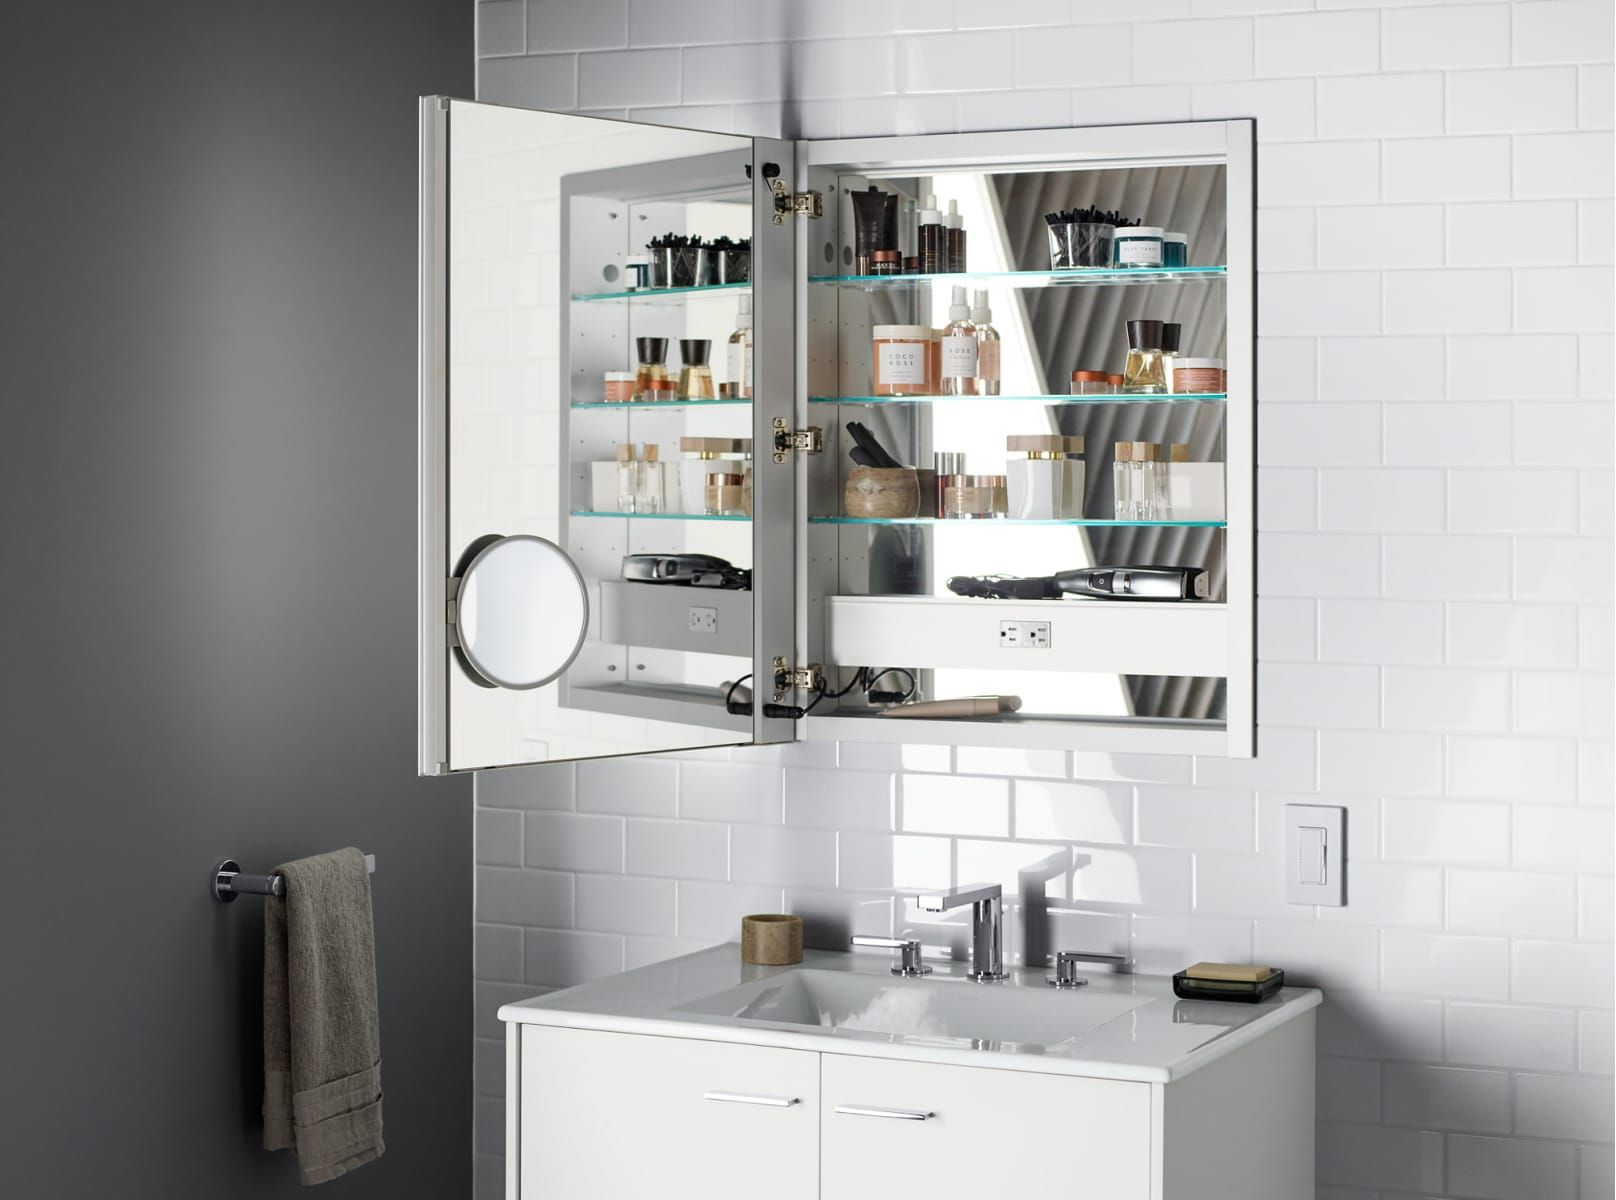 Kohler K 99007 Tl Na Mirrored Verdera 24 Quot W X 30 Quot H Single Door Frameless Medicine Cabinet With